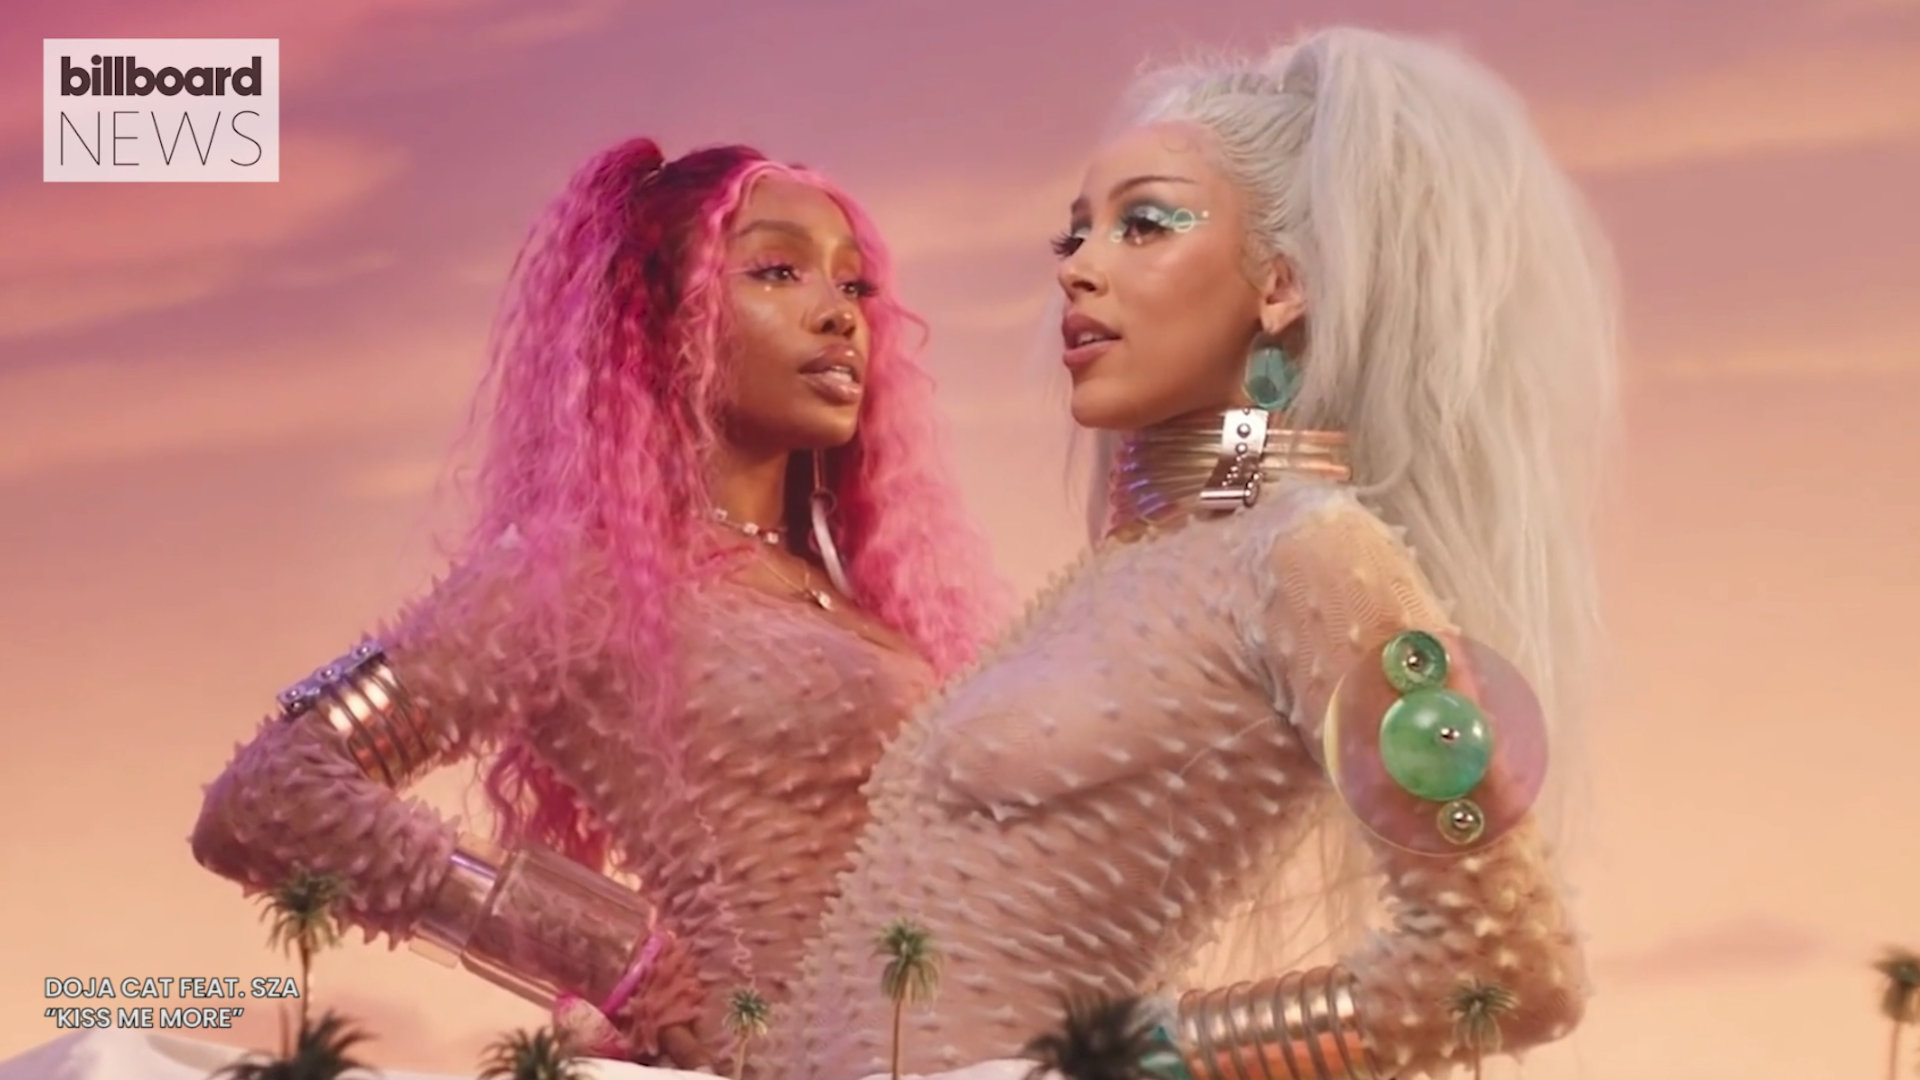 The Players Behind Doja Cat's 'Kiss Me More' Feat. SZA: See the Full Credits